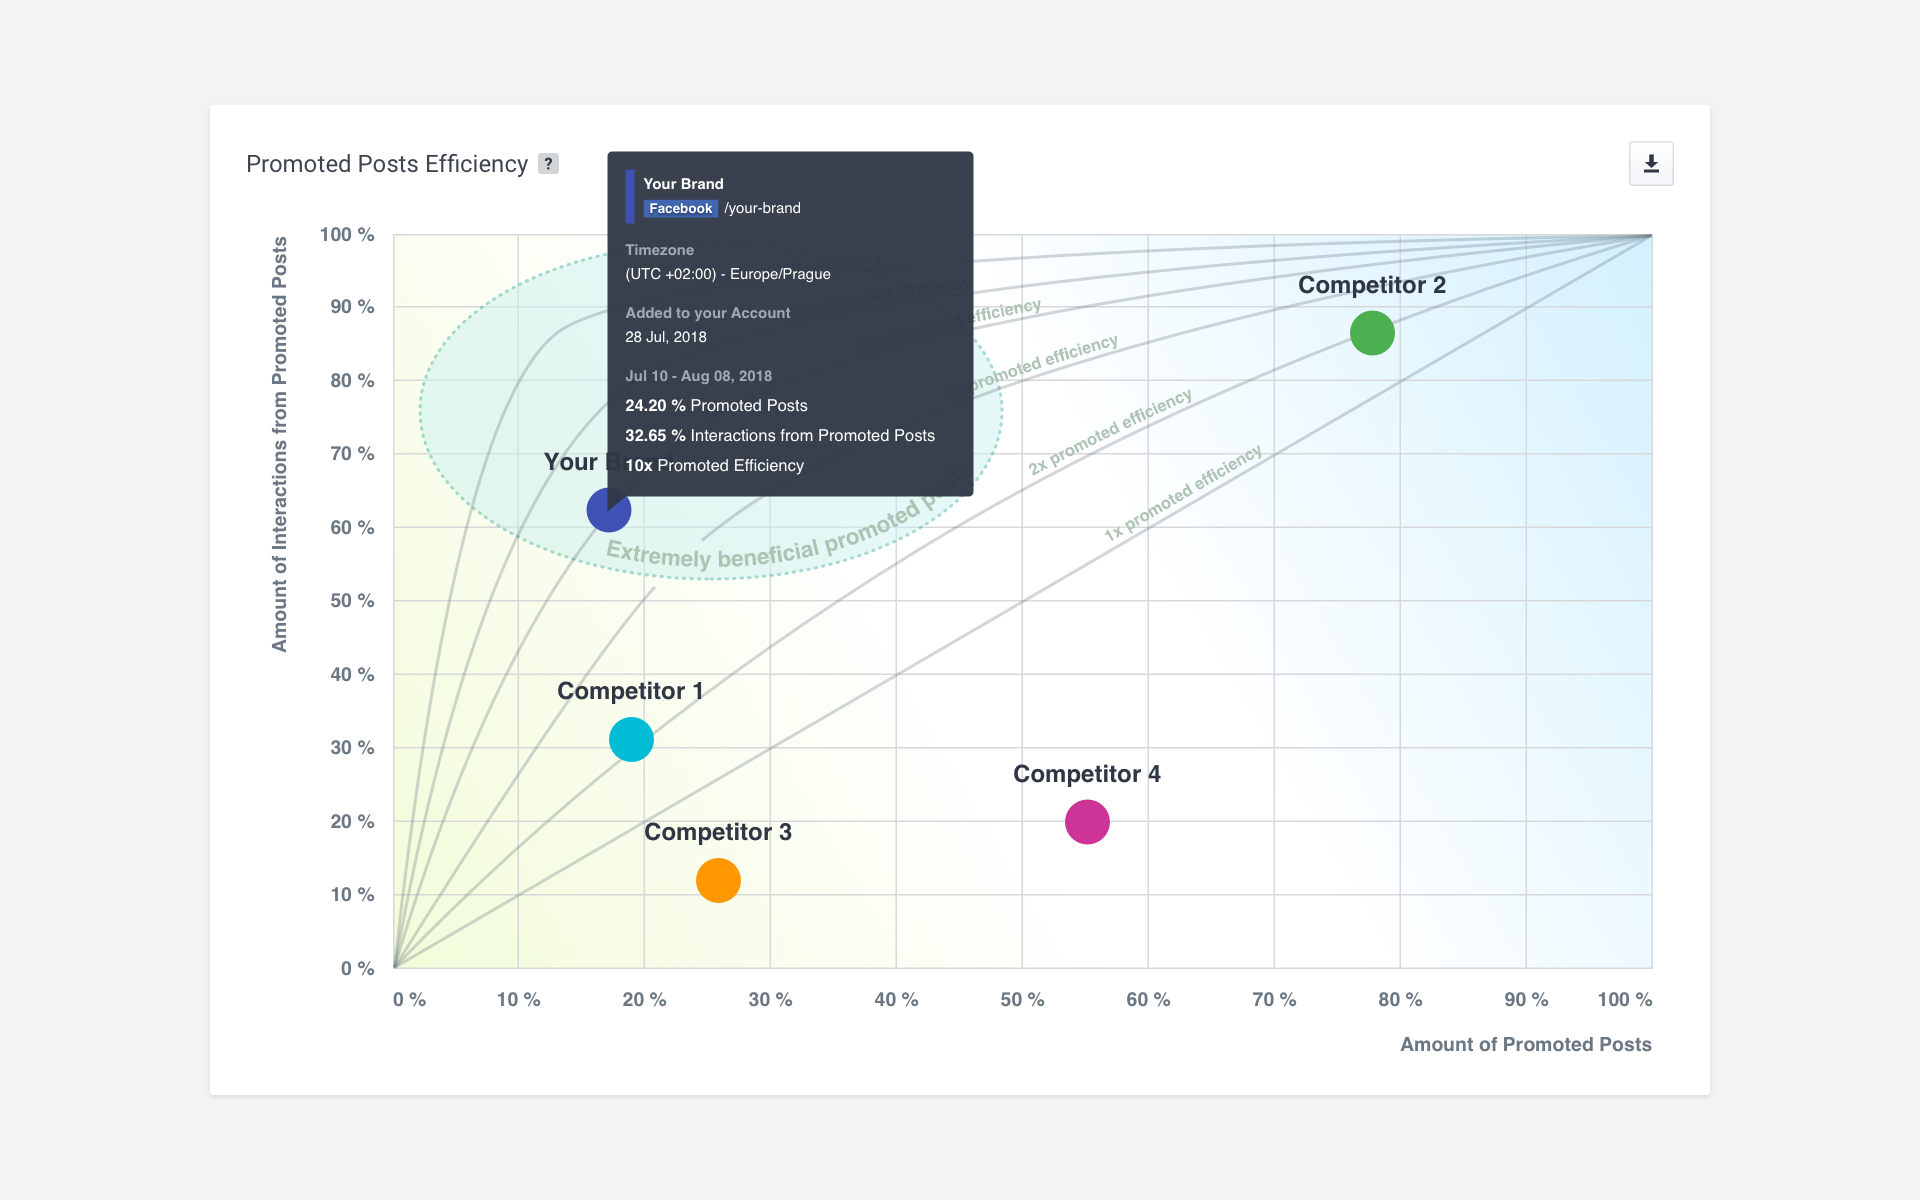 Socialbakers Demo - Detect Competitors' Promoted Posts